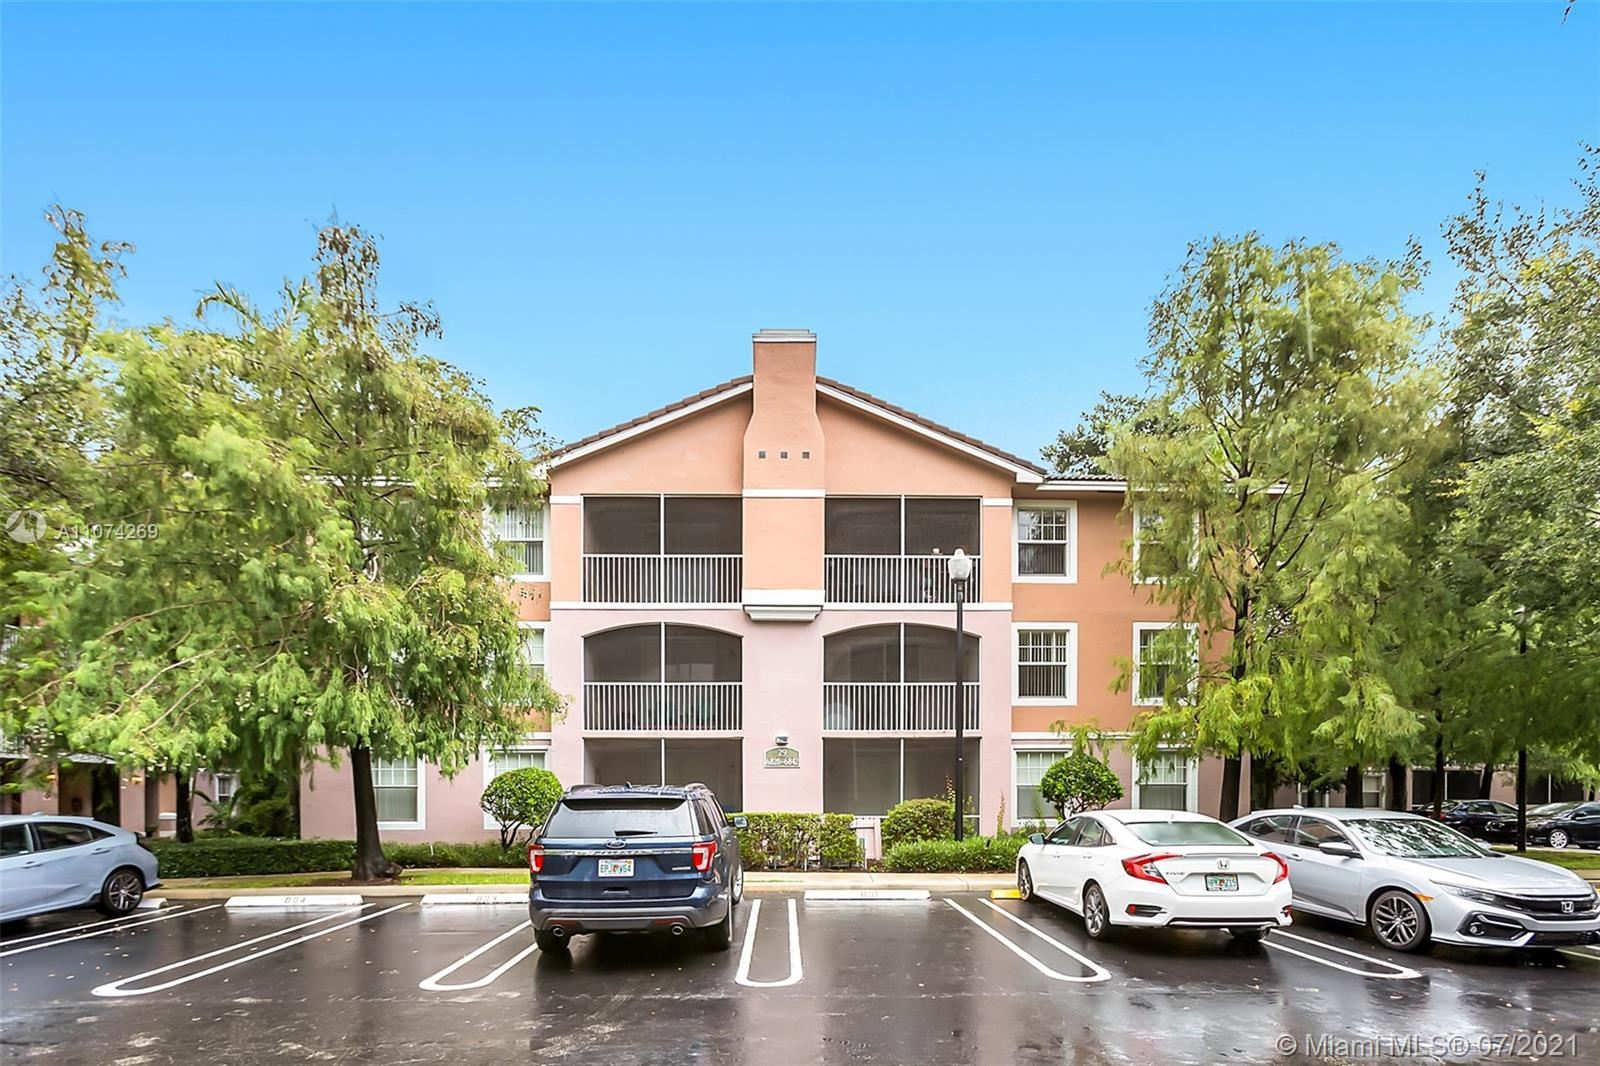 Photo of 6824 W Sample Rd #6824, Coral Springs, FL 33067 (MLS # A11074269)